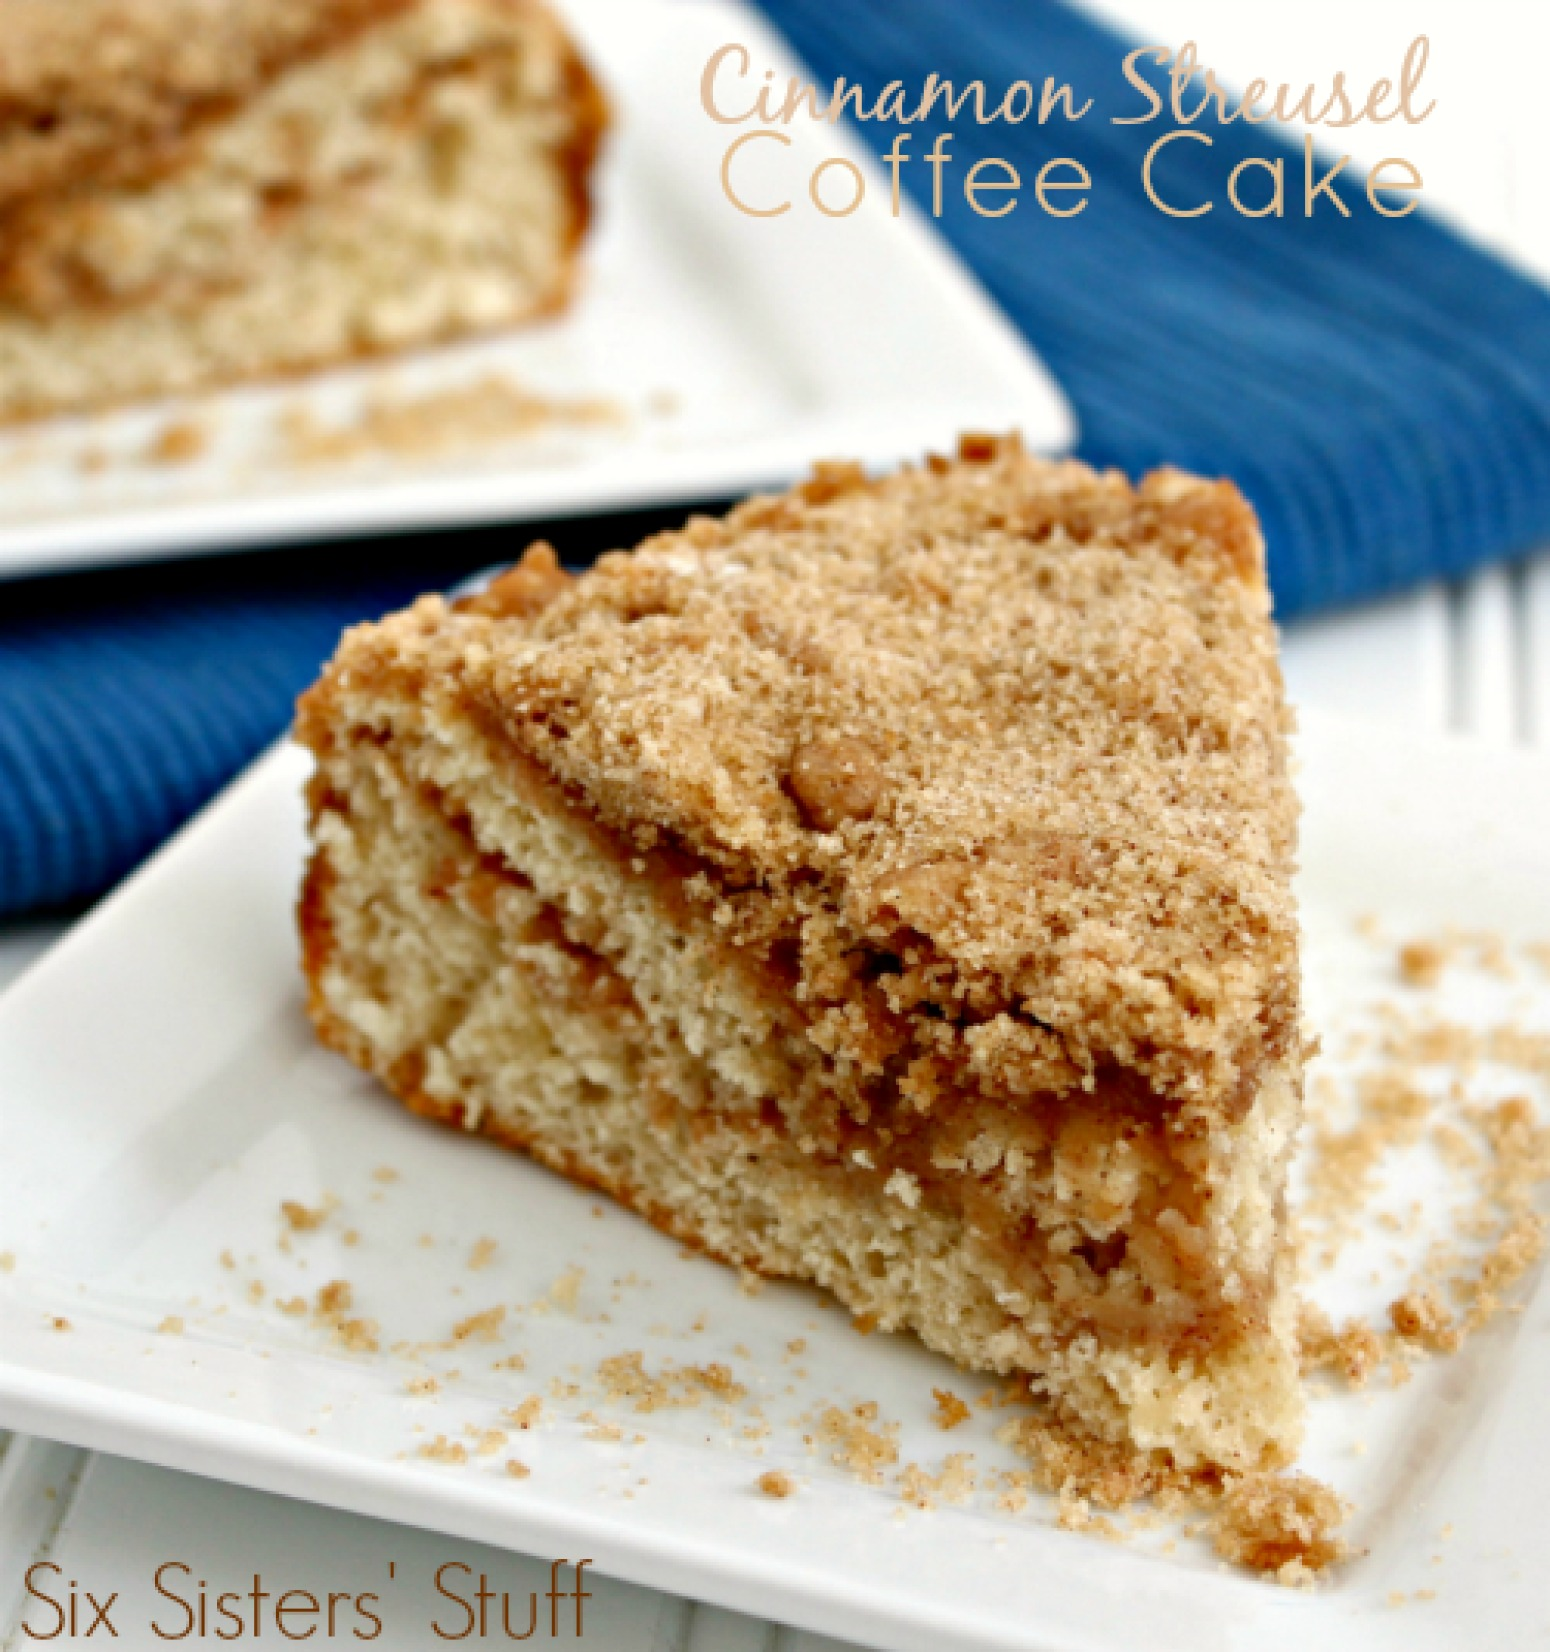 Cinnamon Streusel Coffee Cake Recipe 4 | Just A Pinch Recipes